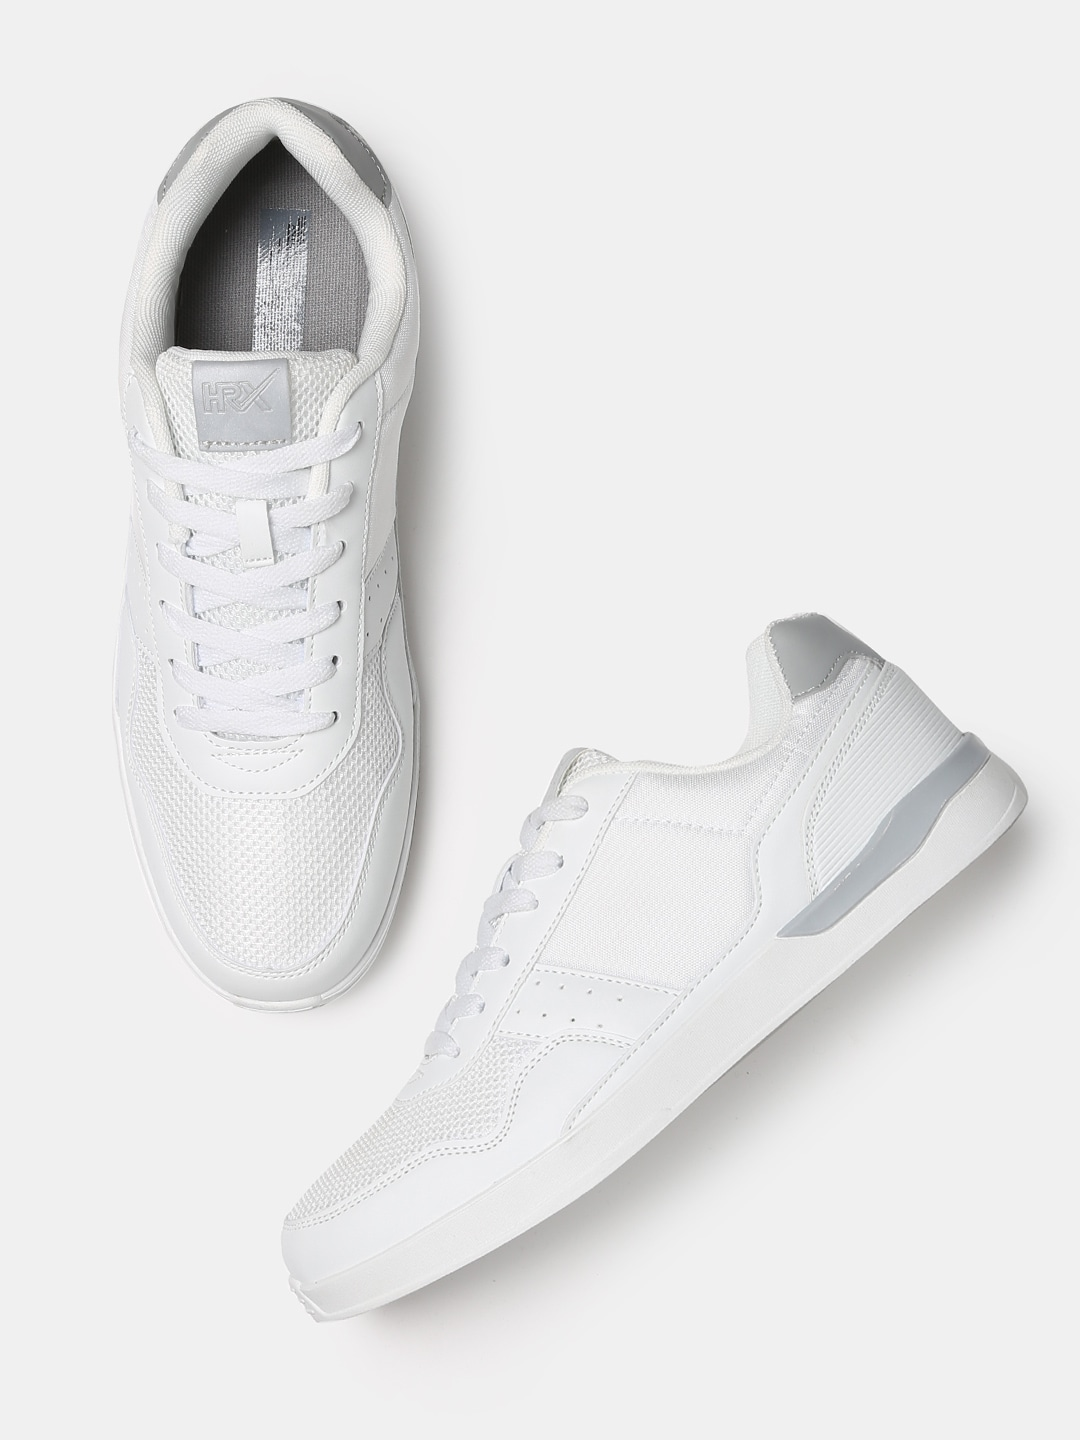 a9ce91f2ba3921 ... shoe bag shoe bag online in india  adidas neo white ...